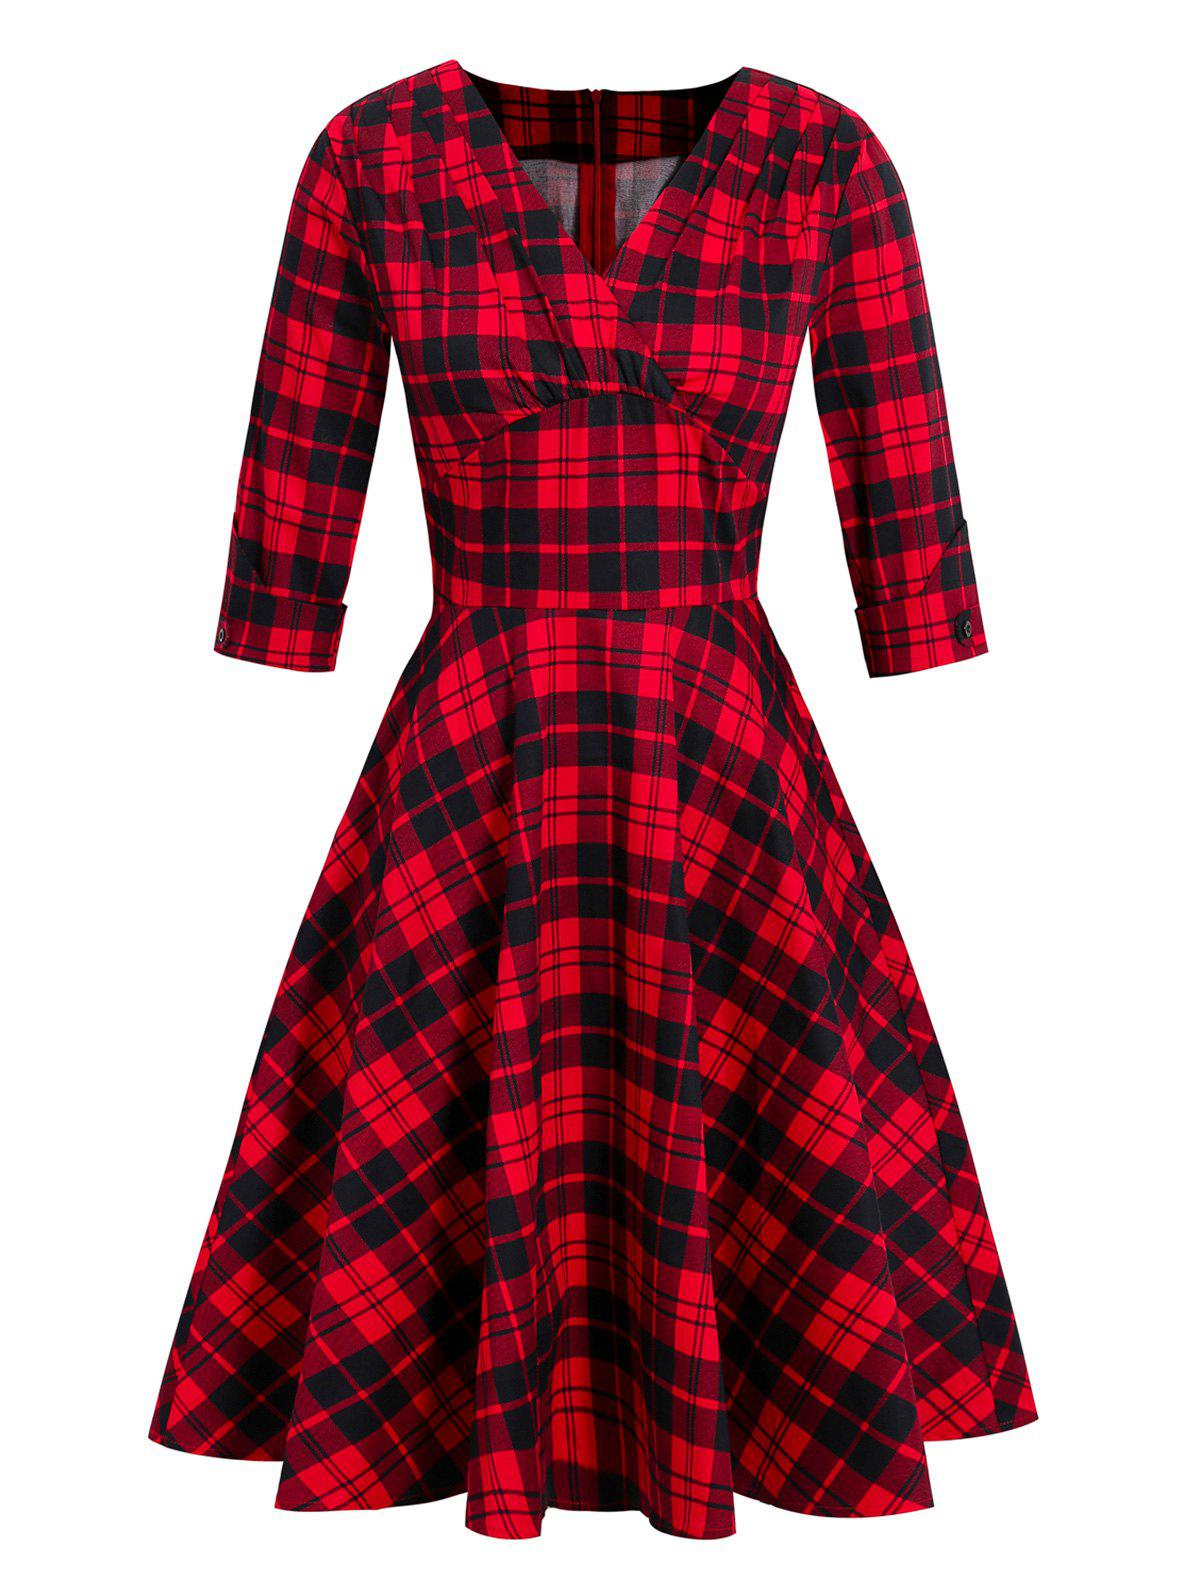 Plaid Plunging Empire Waist Vintage Dress - RED S